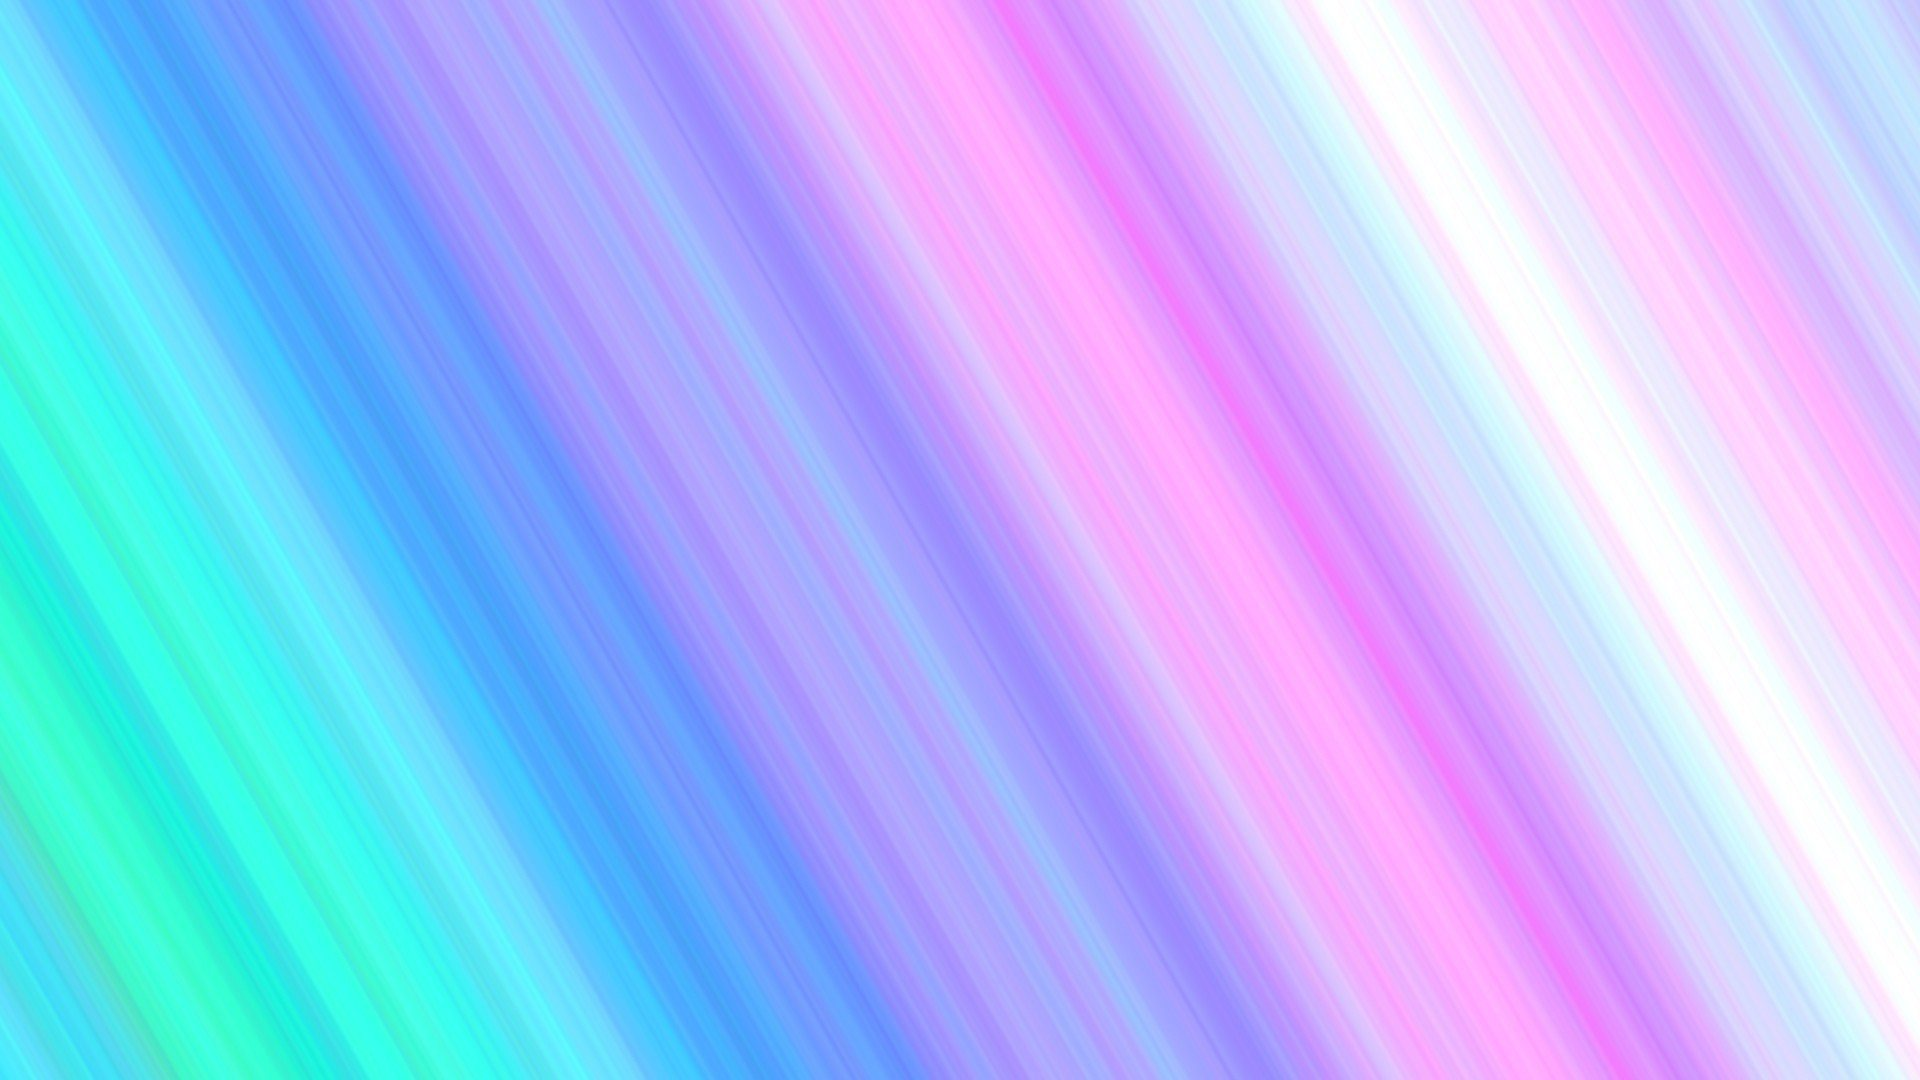 wallpaper abstraction pink purple lines stripes 1920x1080 Wallpapers 1920x1080